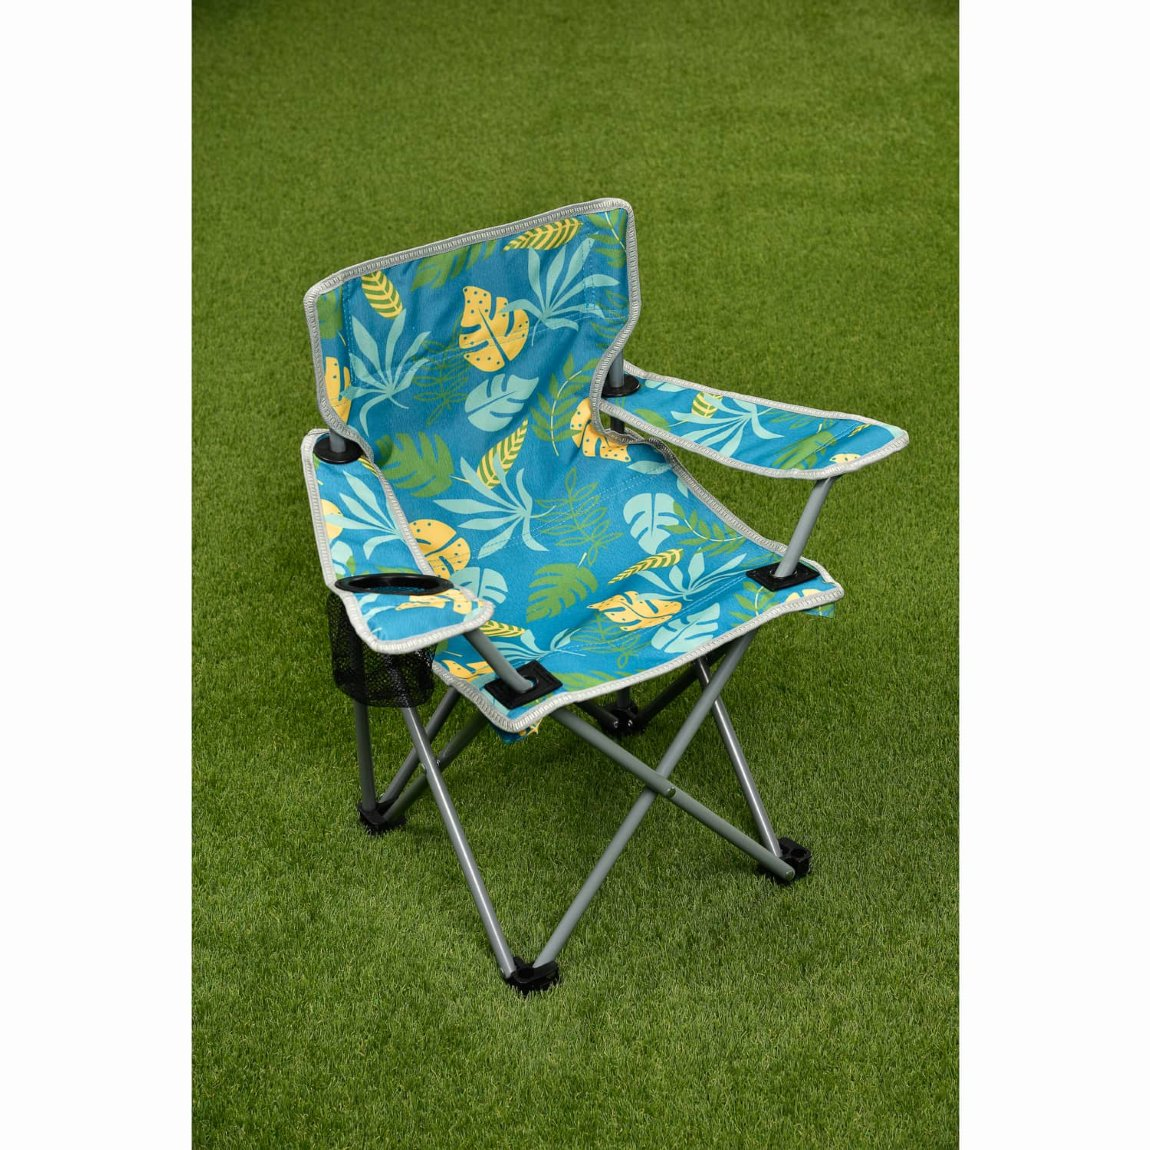 Kids Camping Chair - Leaf